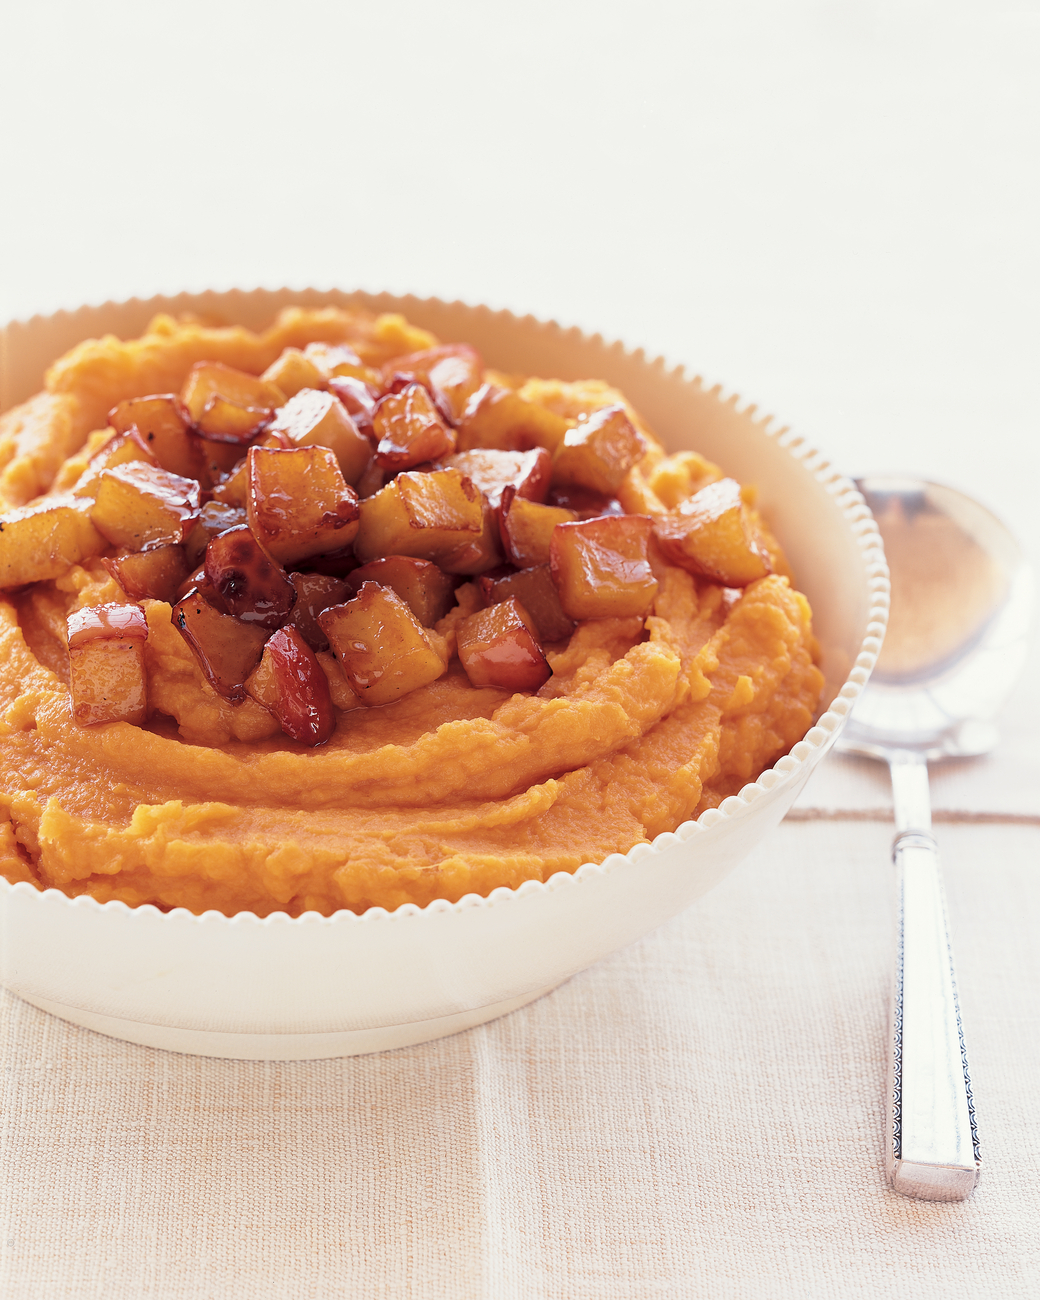 Whipped-sweet-potatoes-1106-ml2llkk01_vert